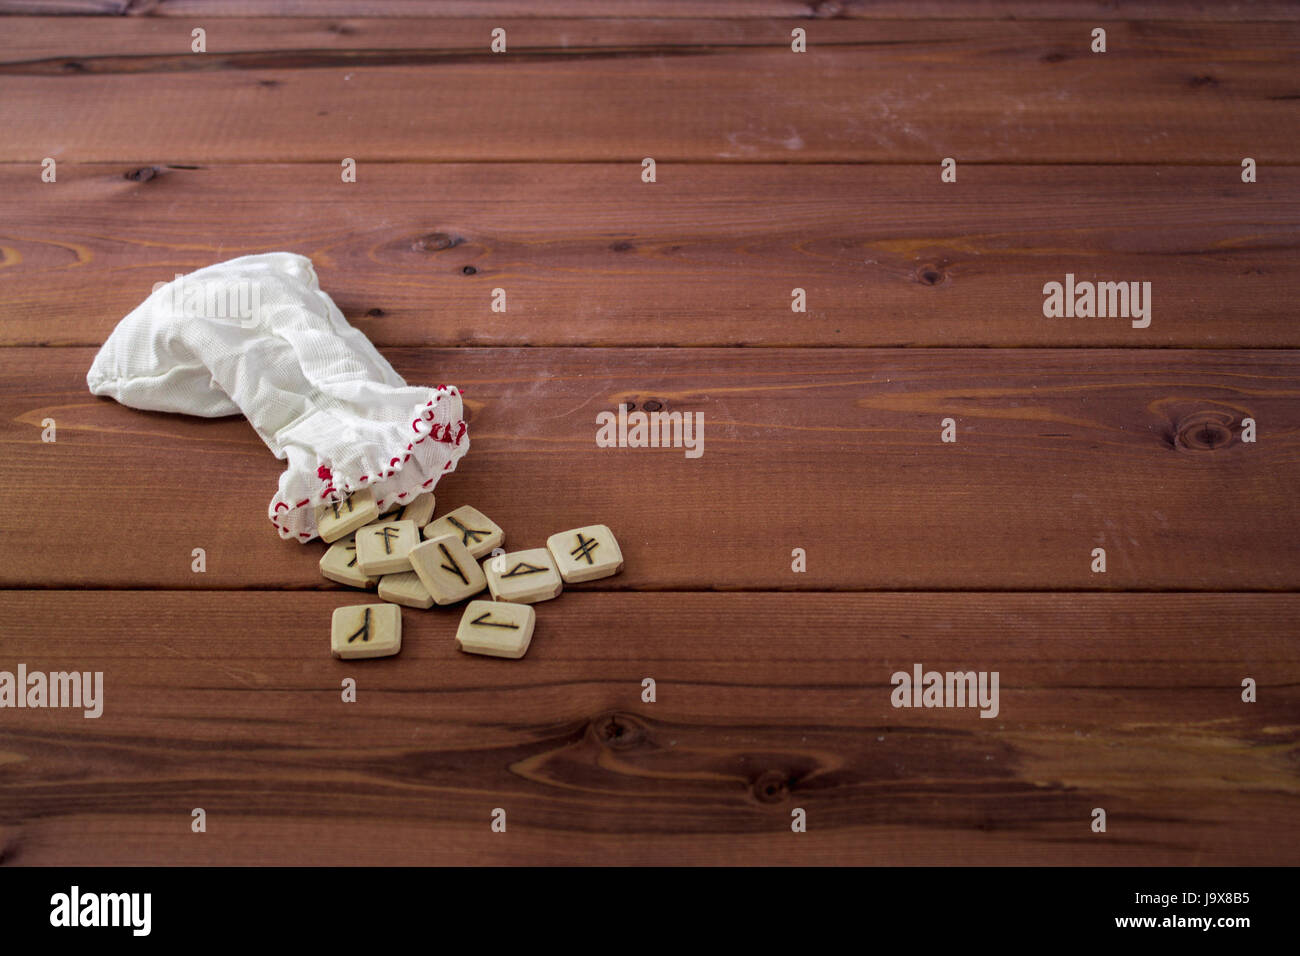 Bag with Slavic runes on a wooden background. Close-up. - Stock Image